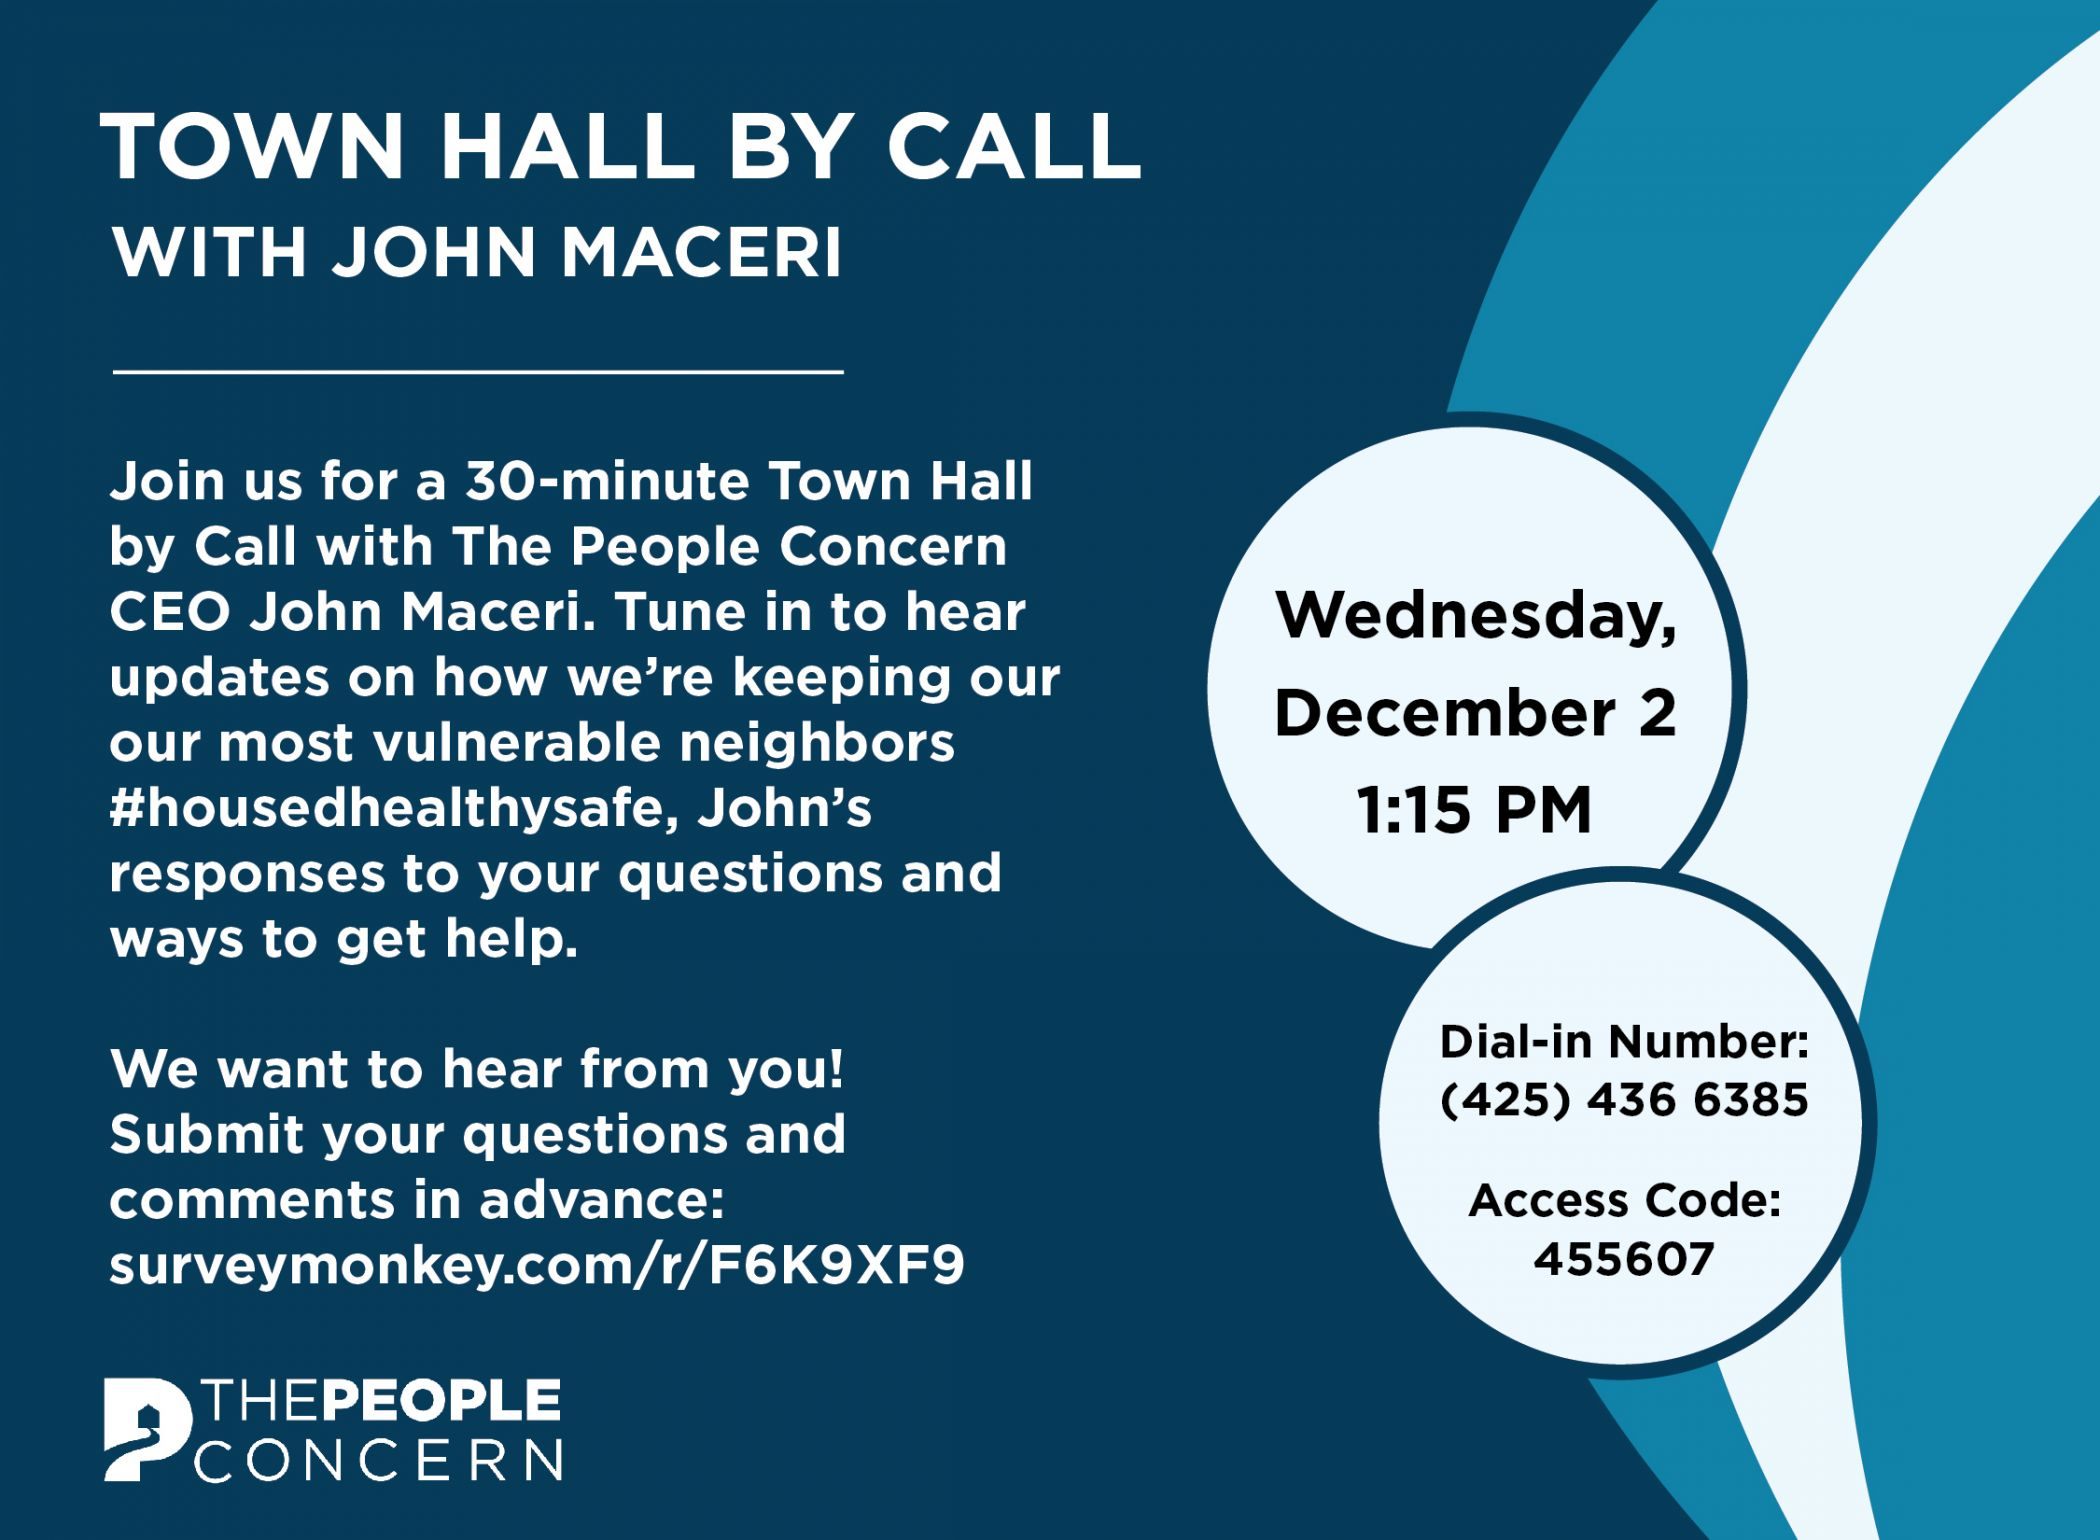 Town Hall by Call with John  Maceri